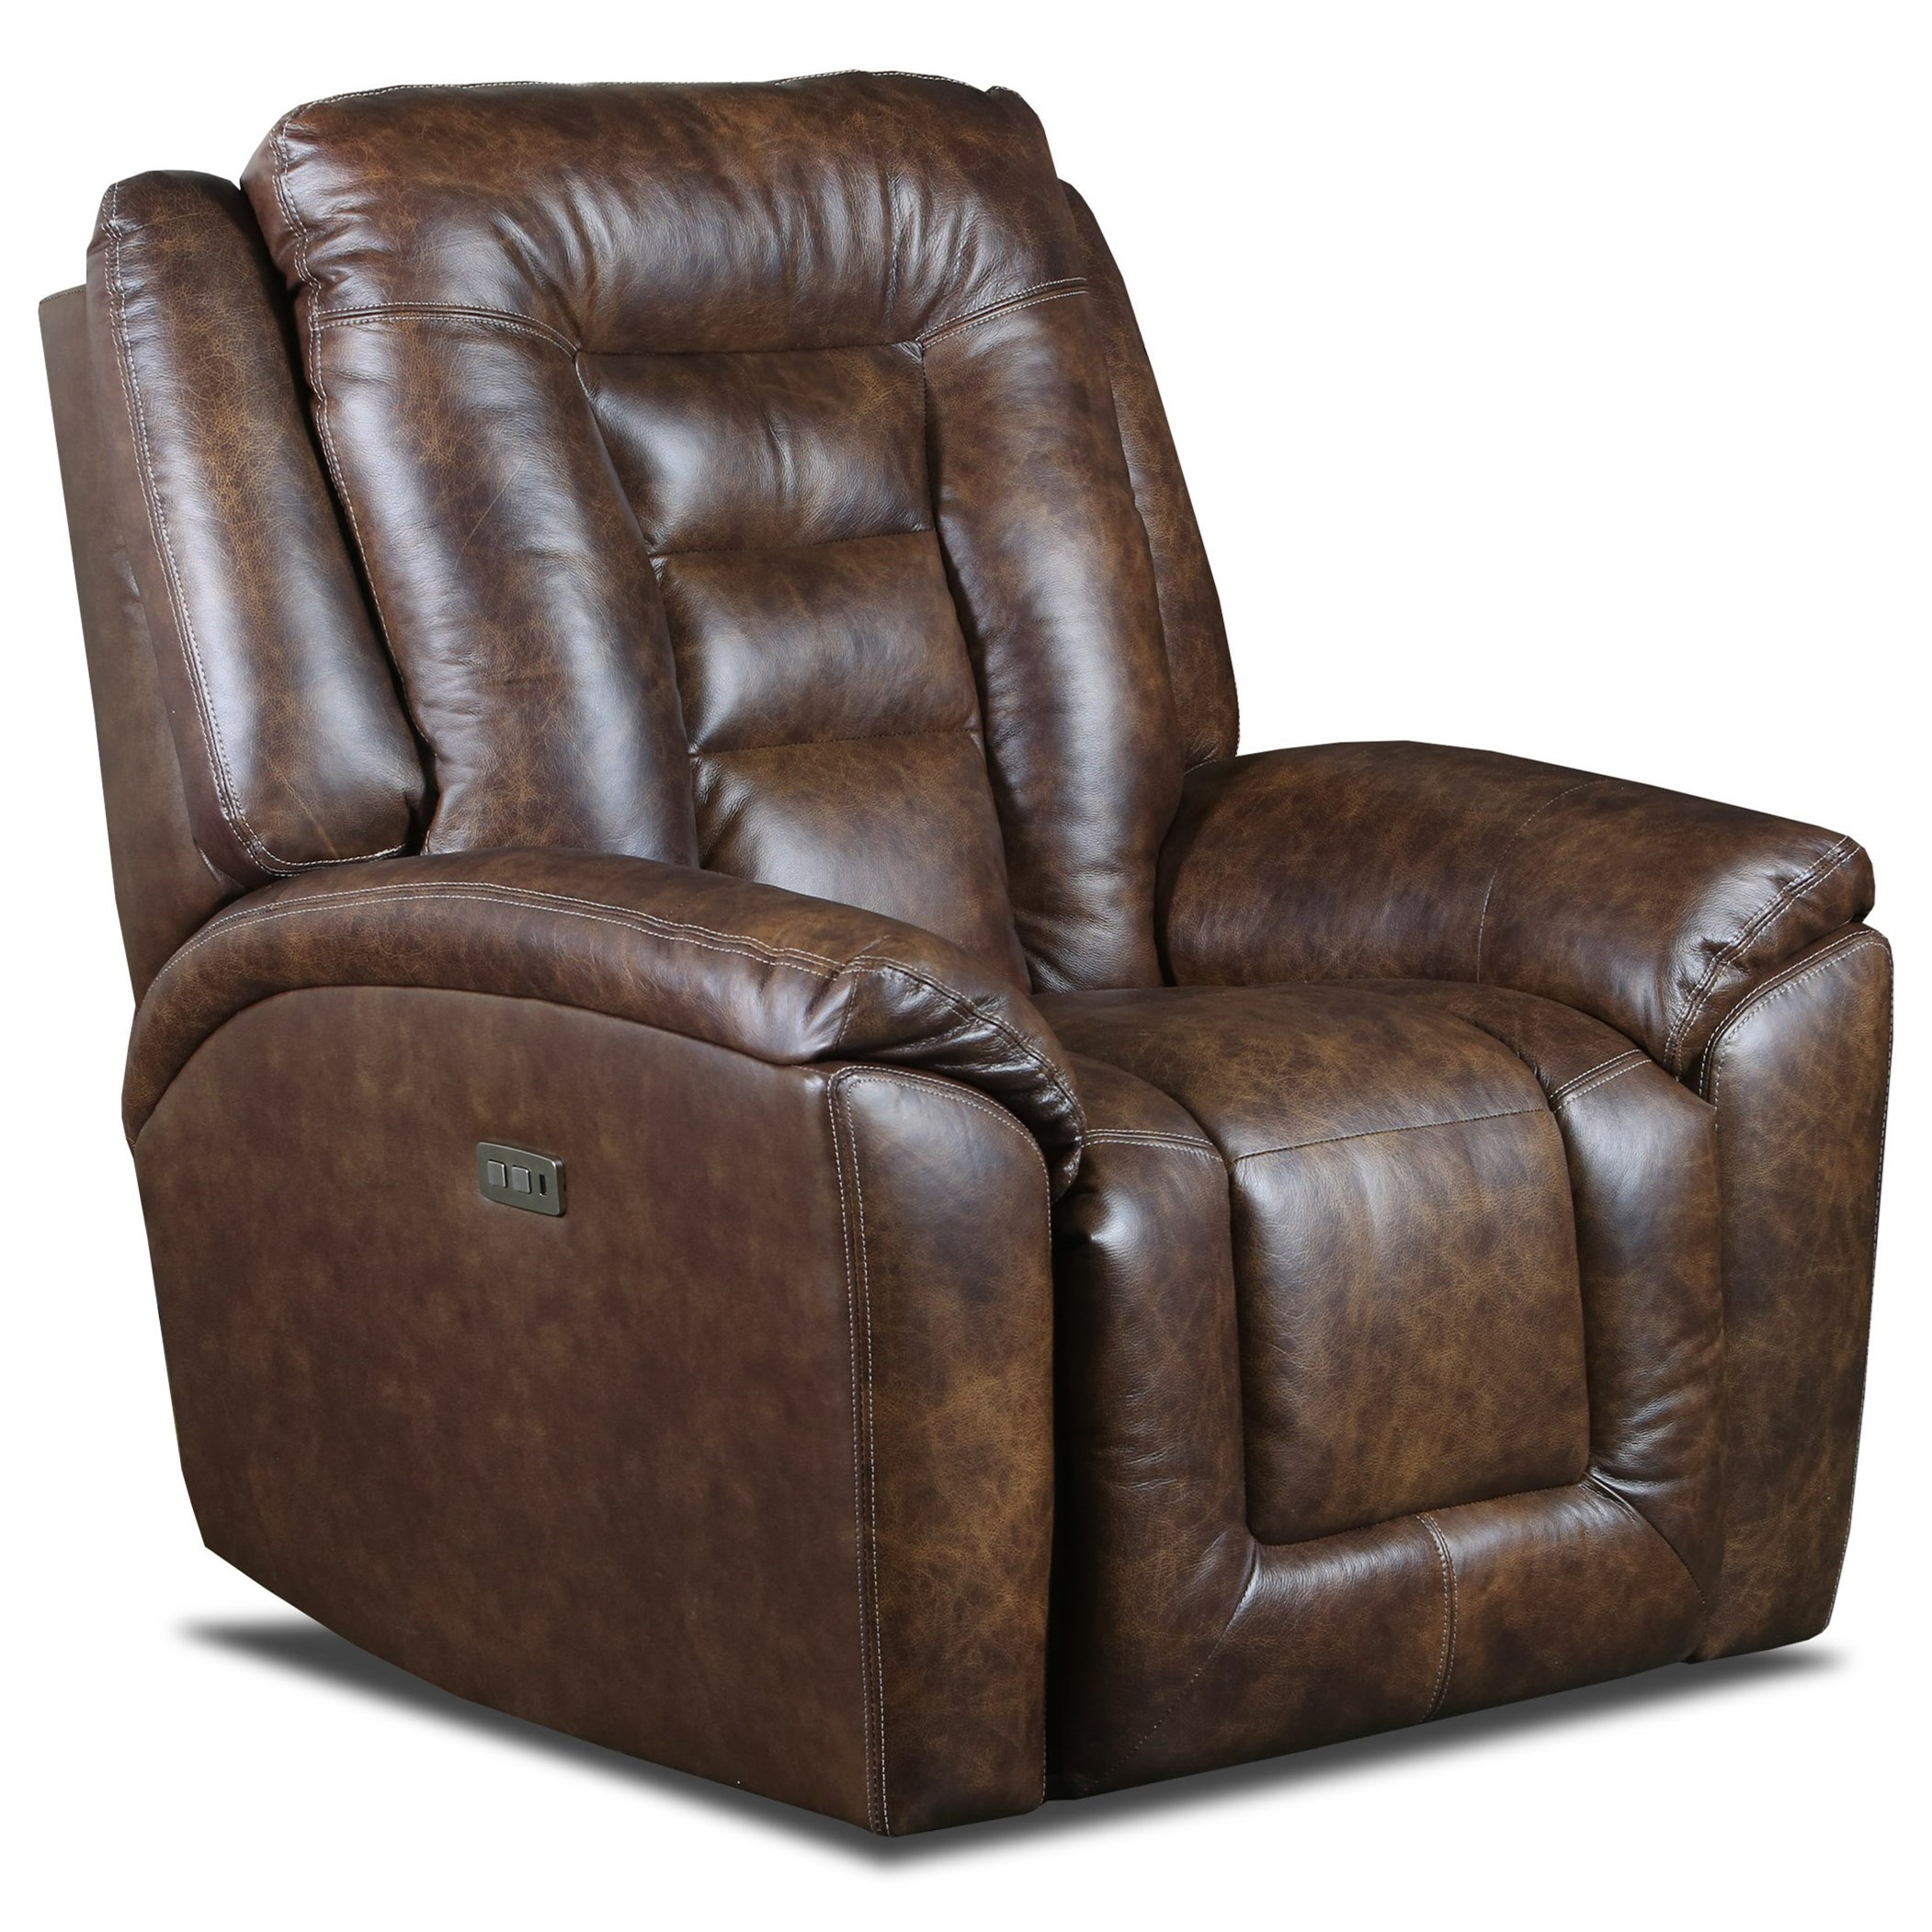 Grid Iron Power Headrest Rocker Recliner by Southern Motion at Sparks HomeStore